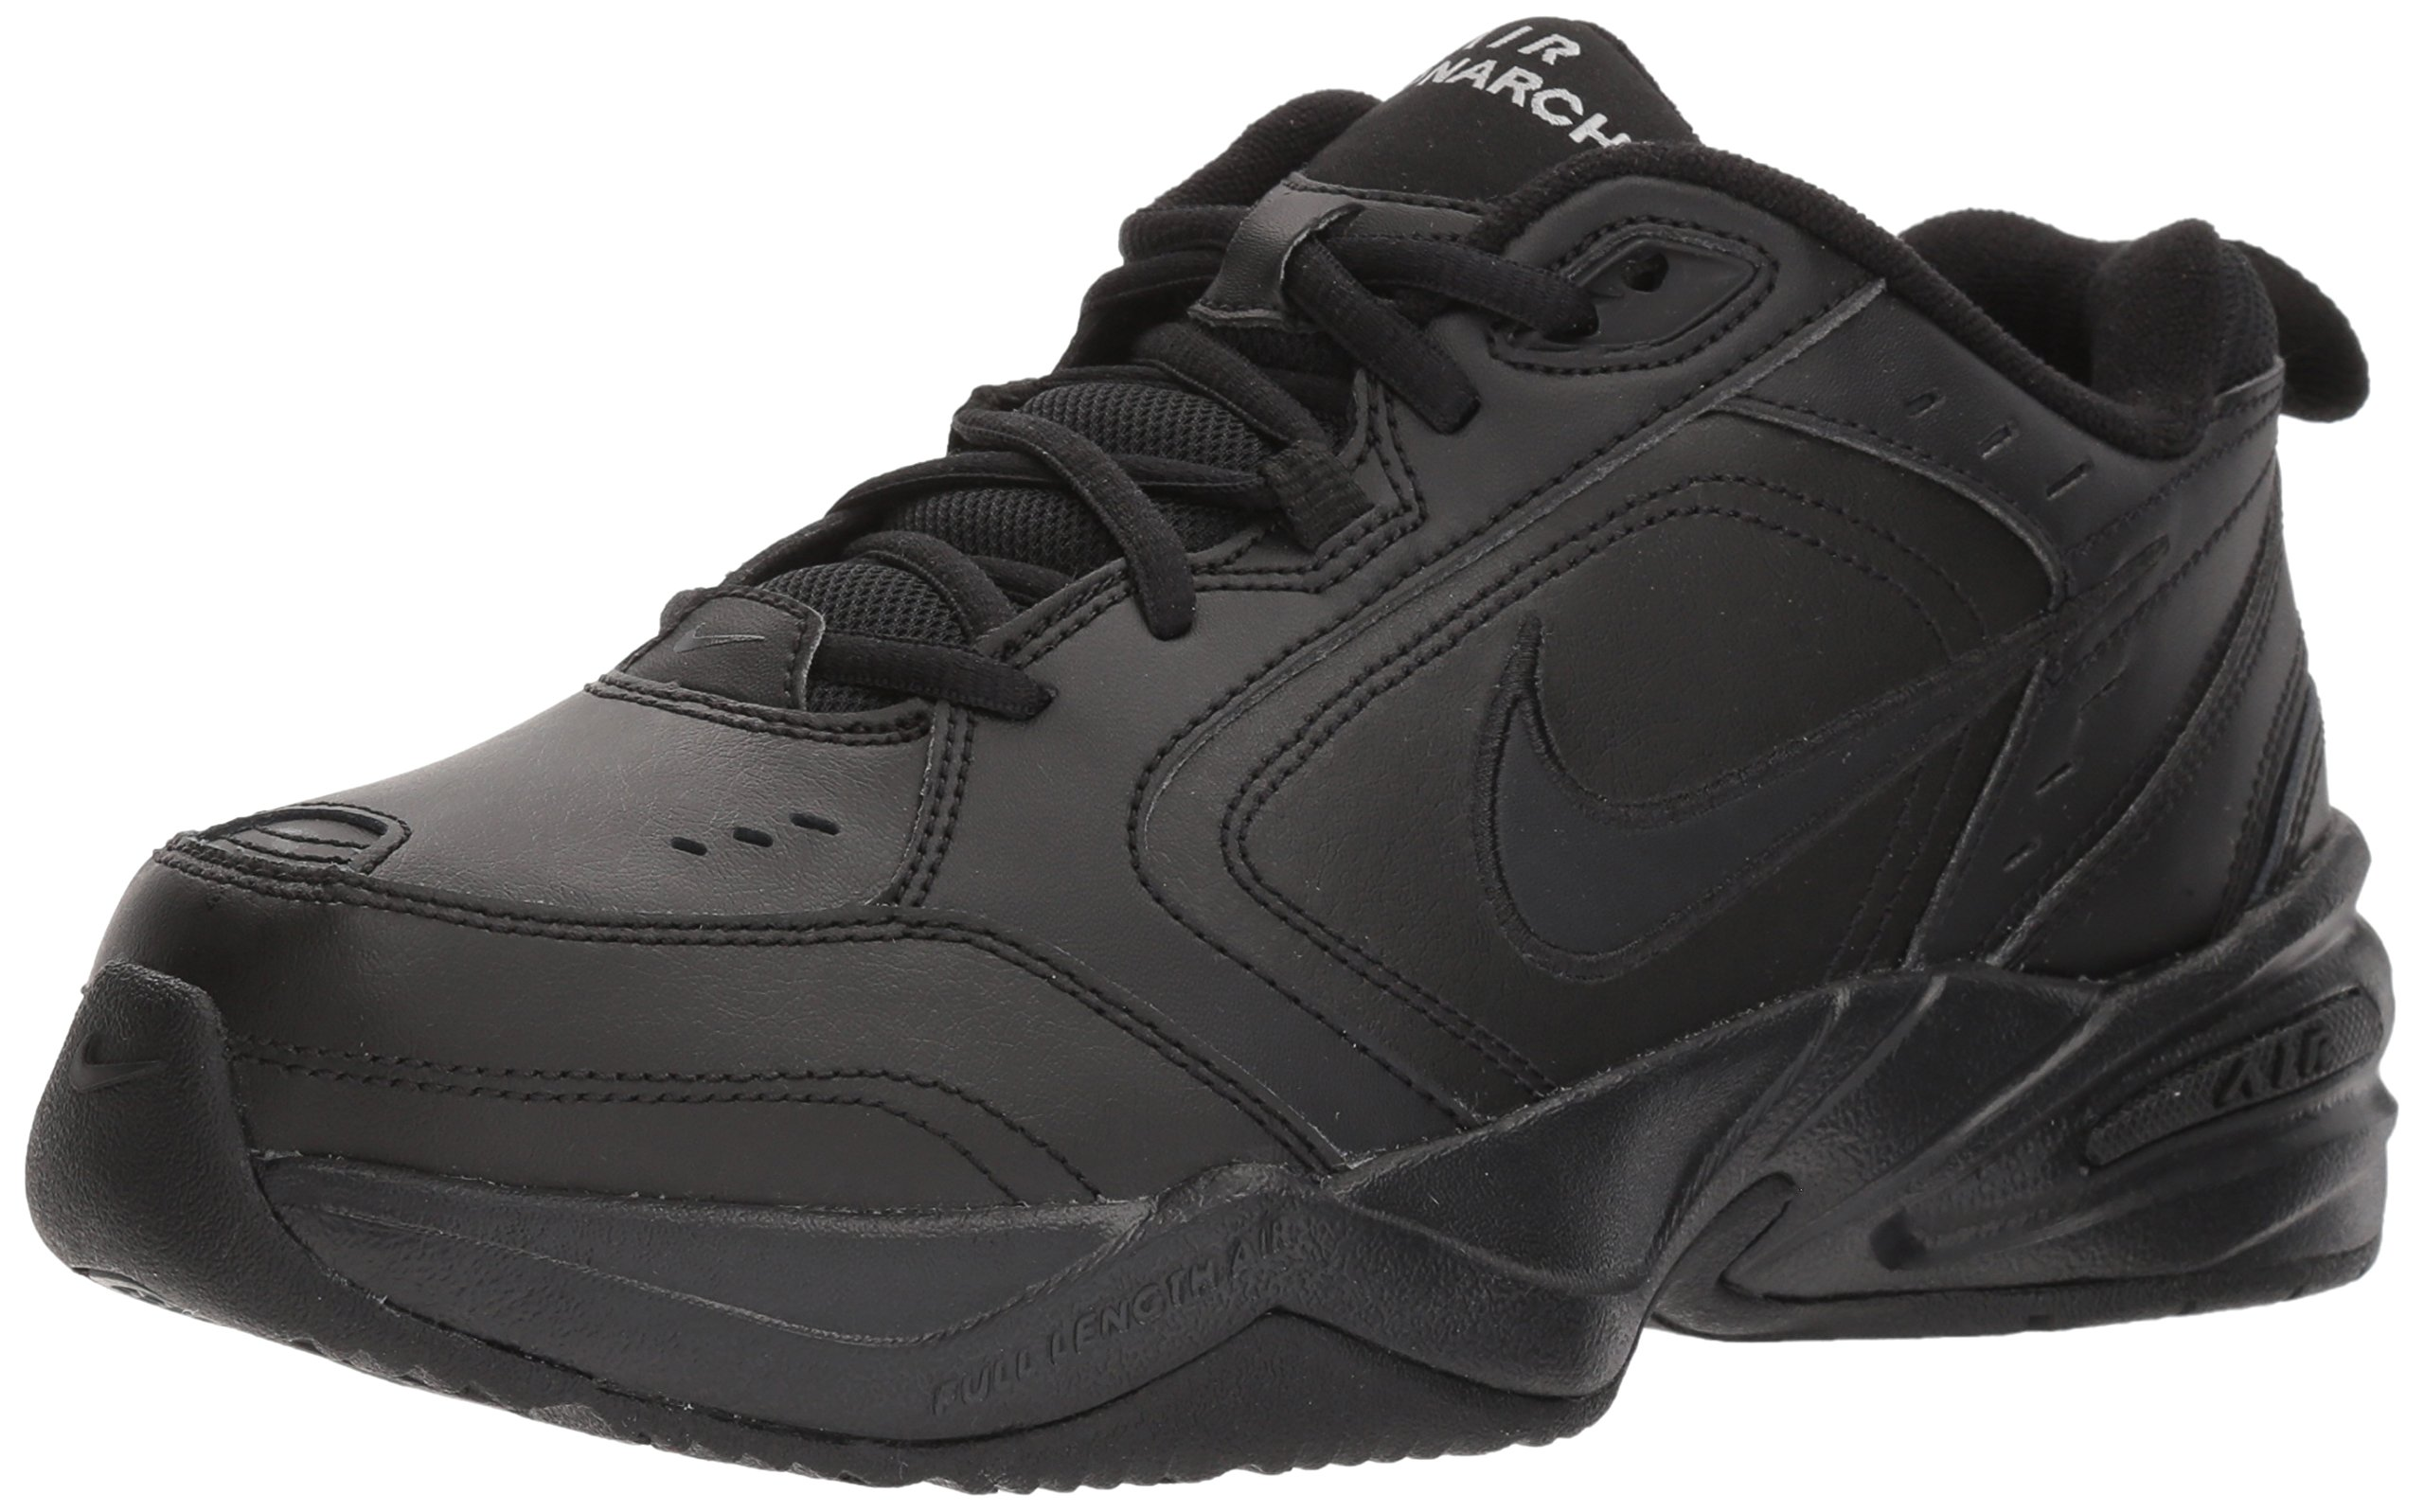 f6916bdbbebb3 Galleon - Nike Men s Air Monarch IV Cross Trainer